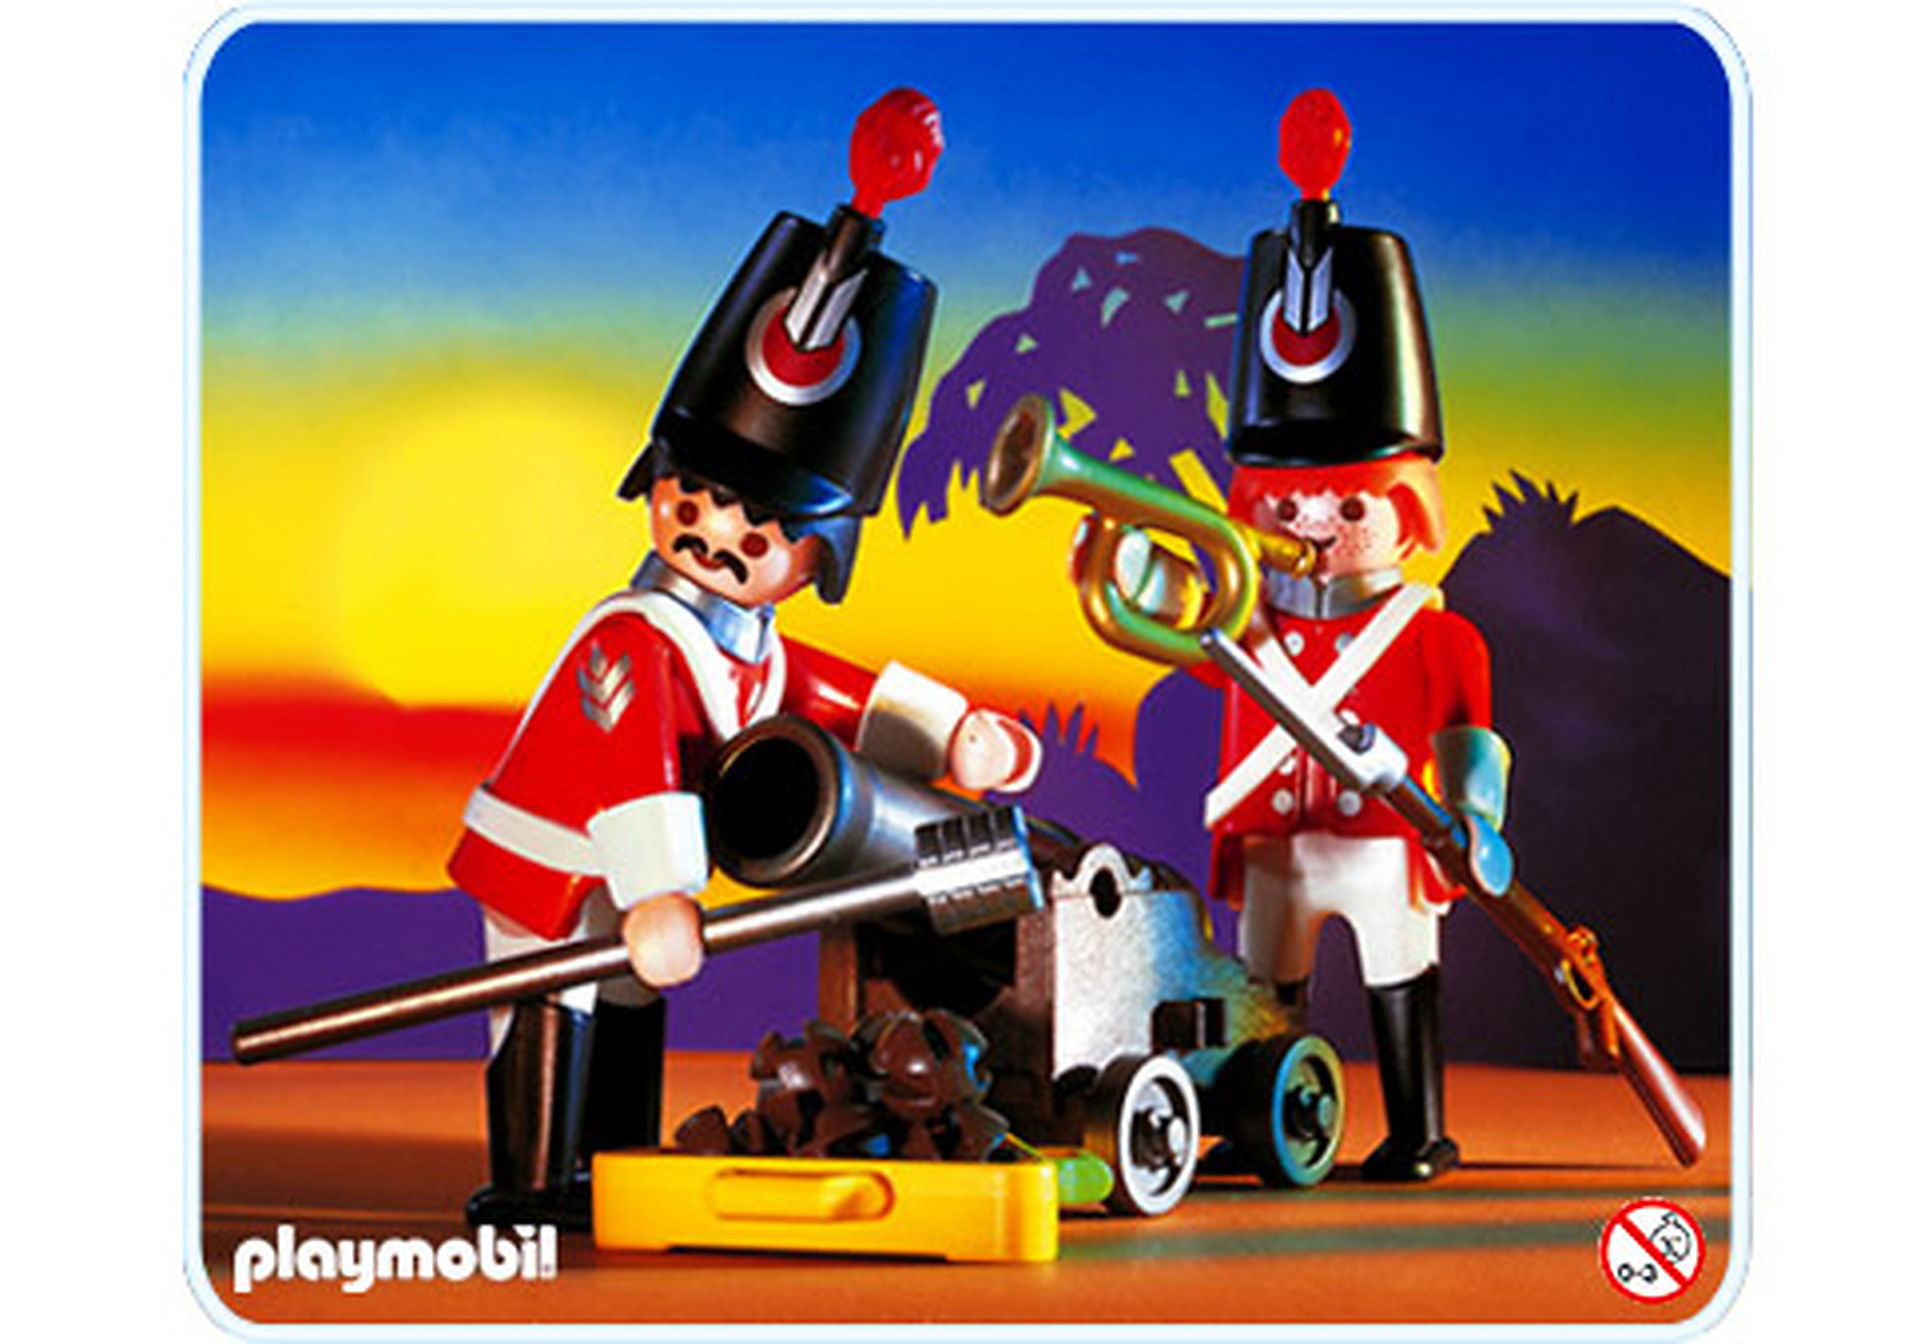 http://media.playmobil.com/i/playmobil/3857-A_product_detail/Wachposten